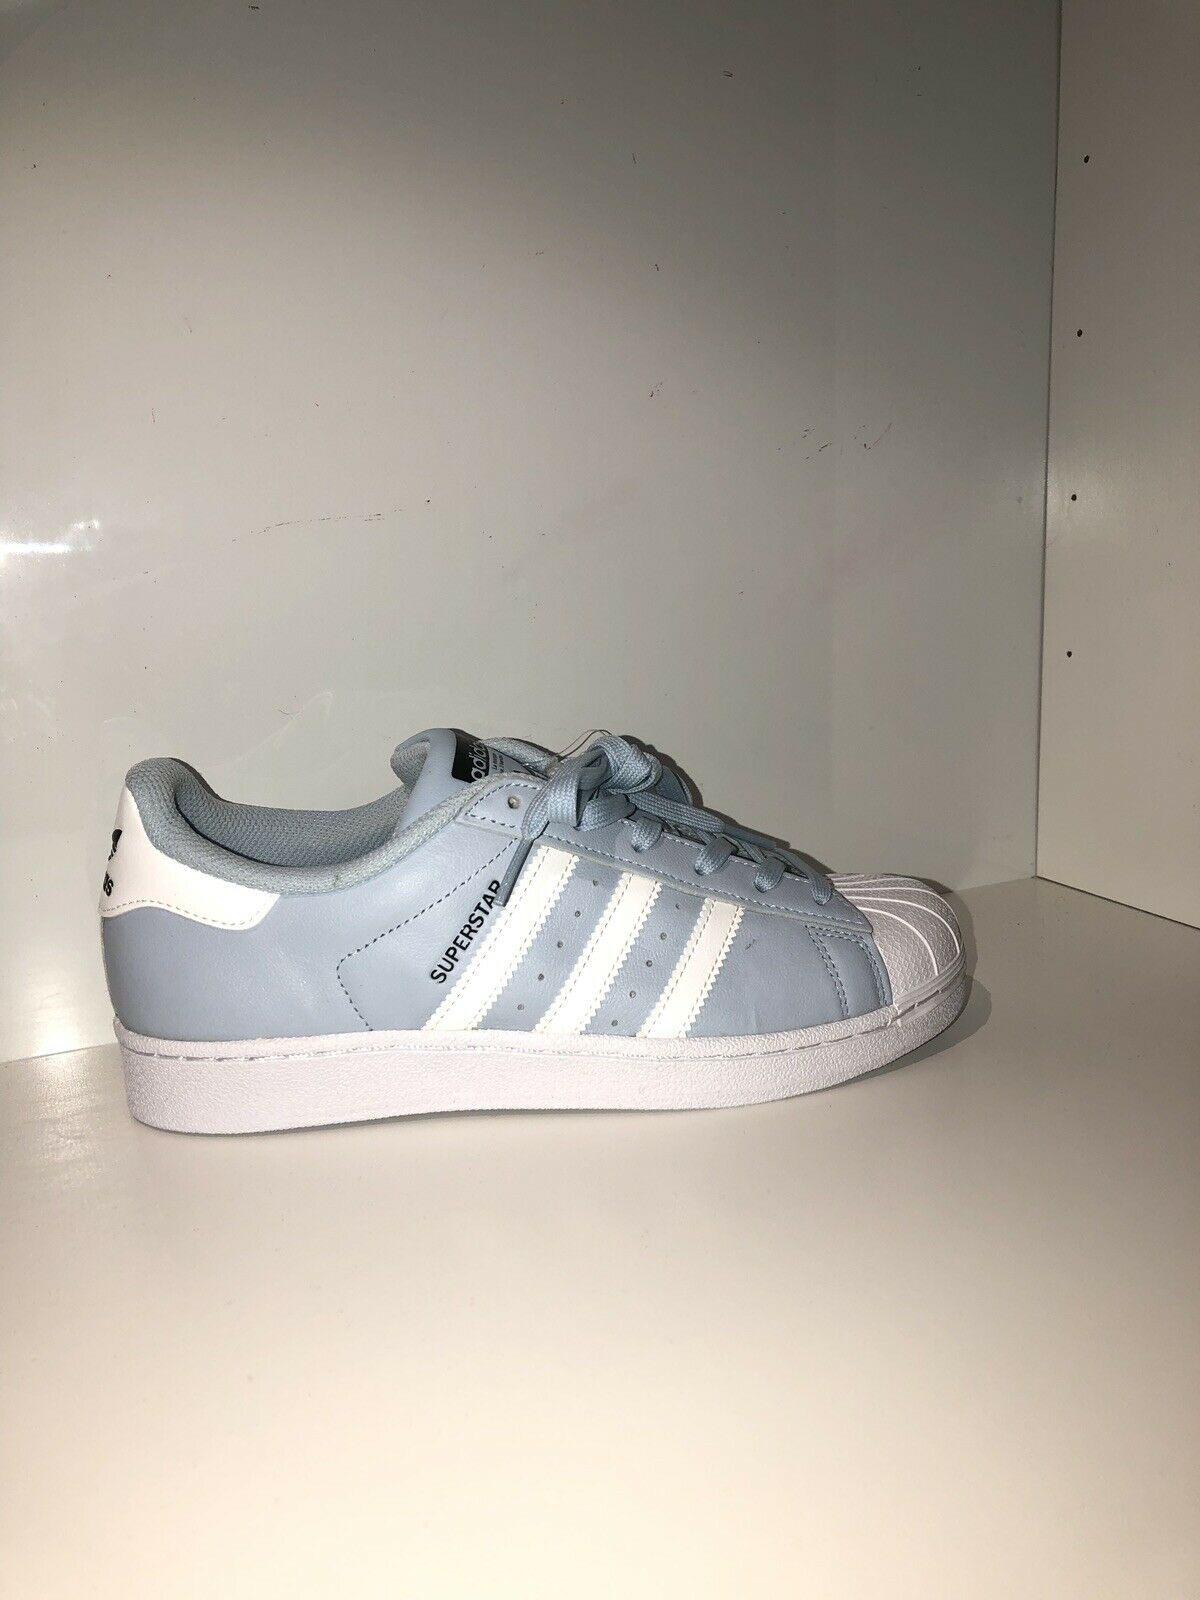 Adidas Original Superstars Baby bluee  Light bluee Brand New Size 6